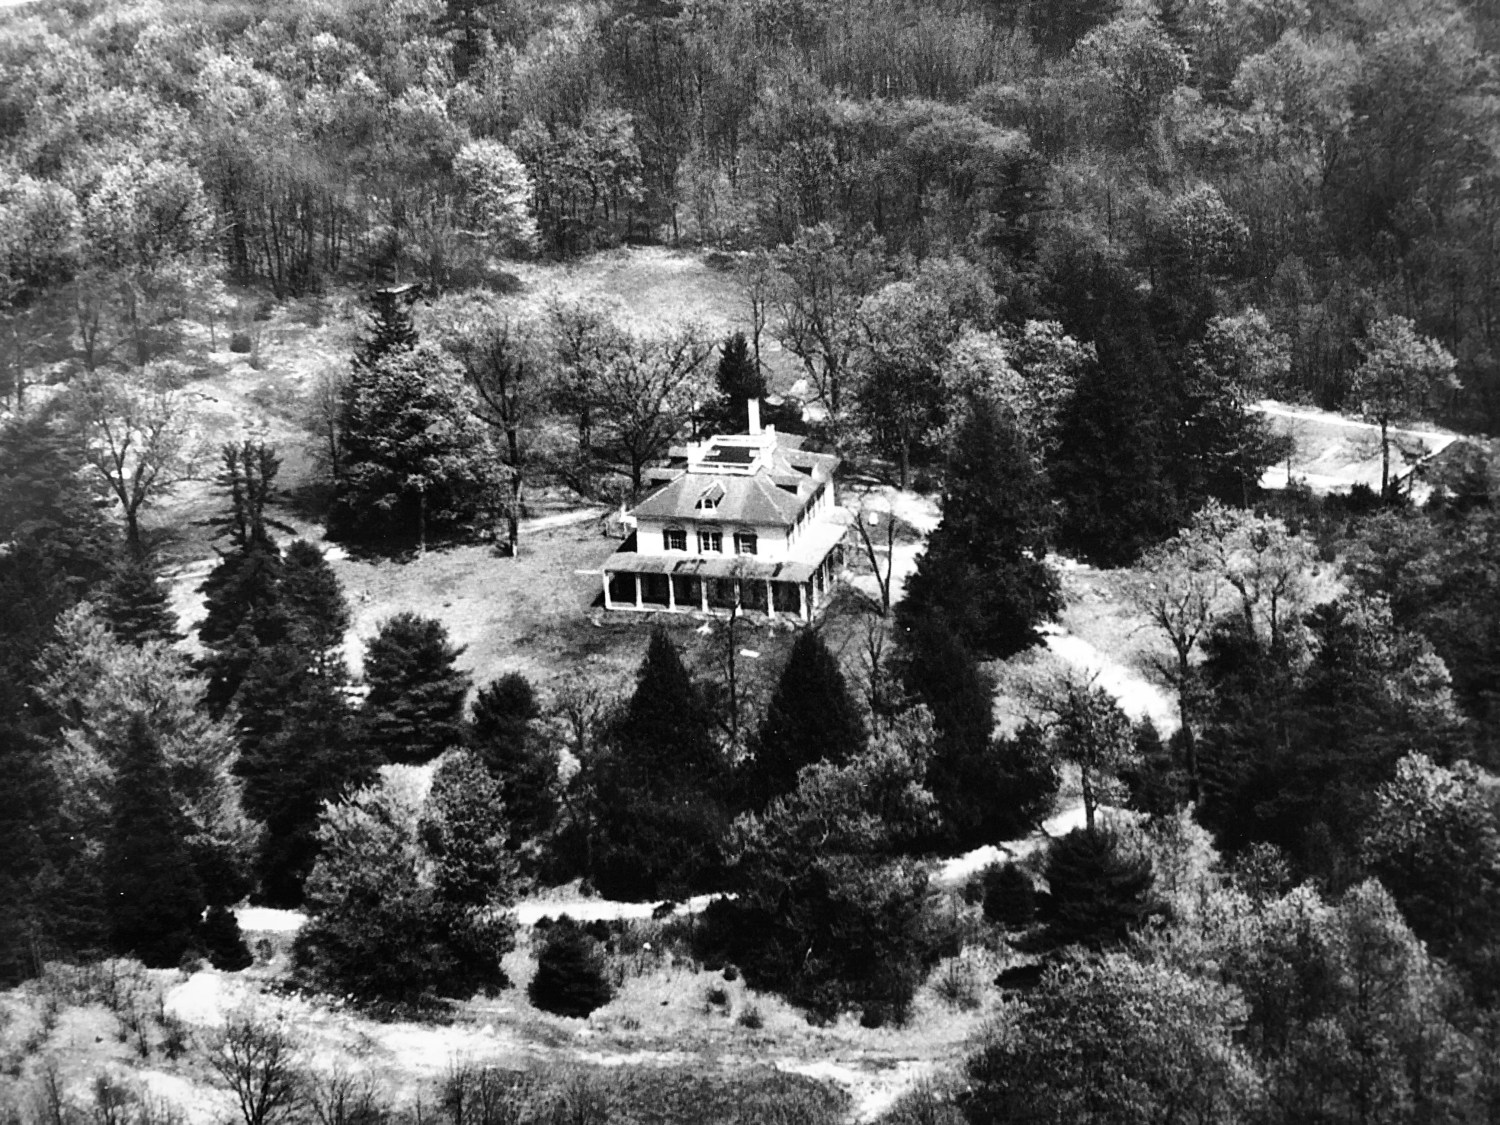 Frothingham mansion, now 3 Theresa Ave., built in 1853. Photo credit: Dayle Caterino